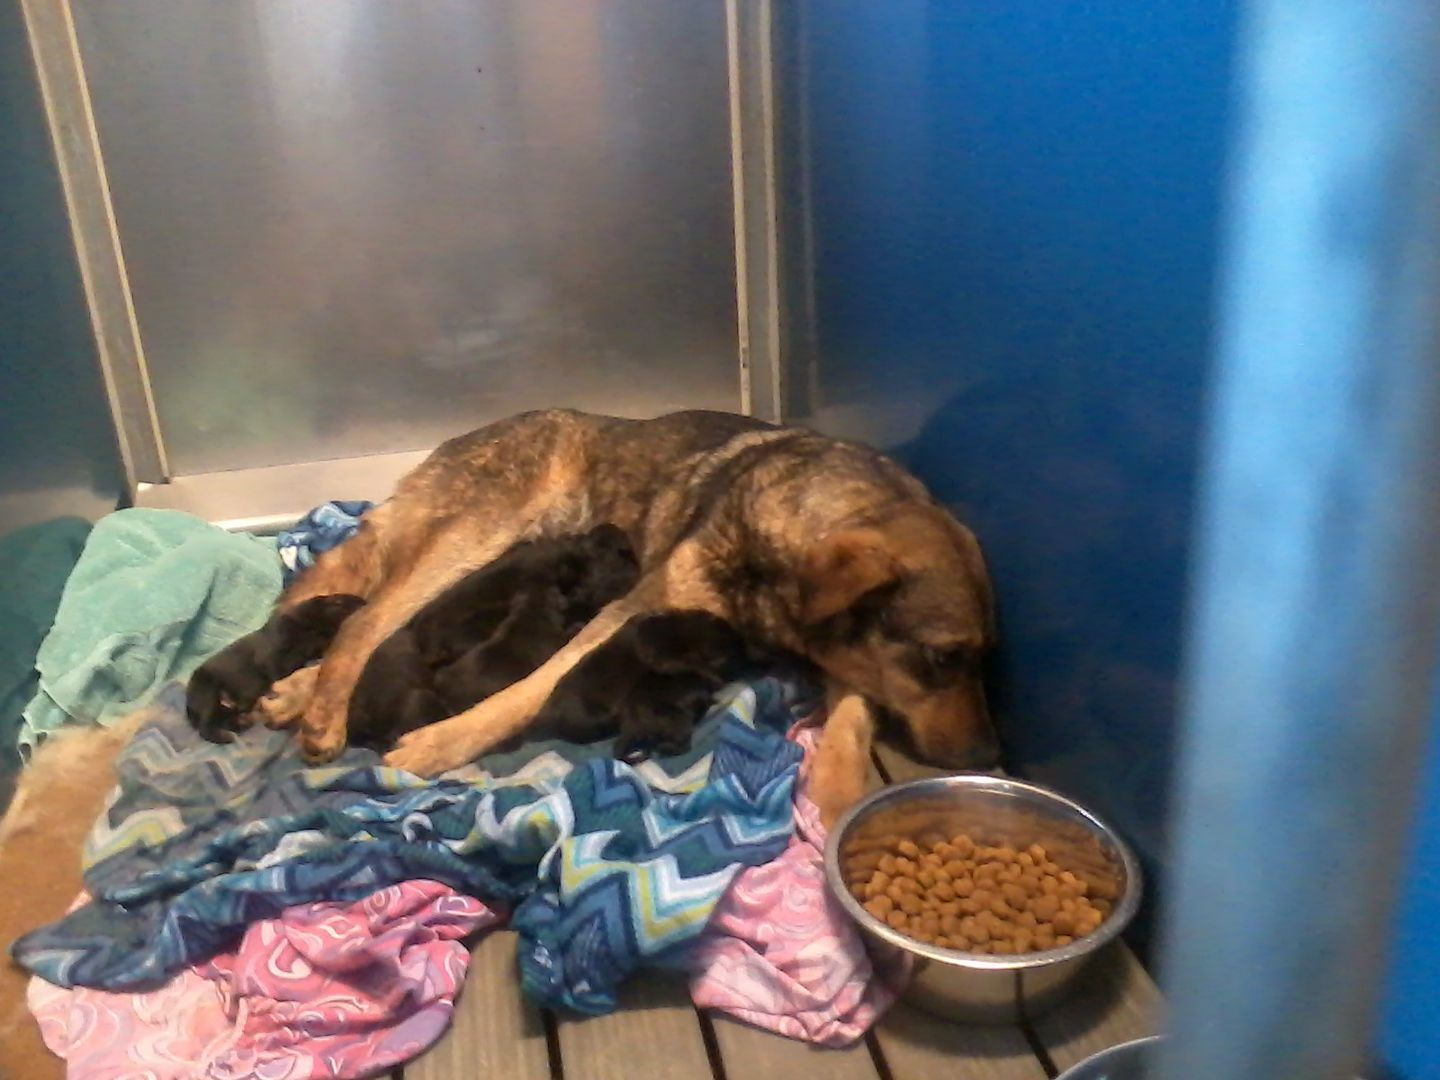 Hall County Animal Shelter Gainesville Georgia Dog Found With